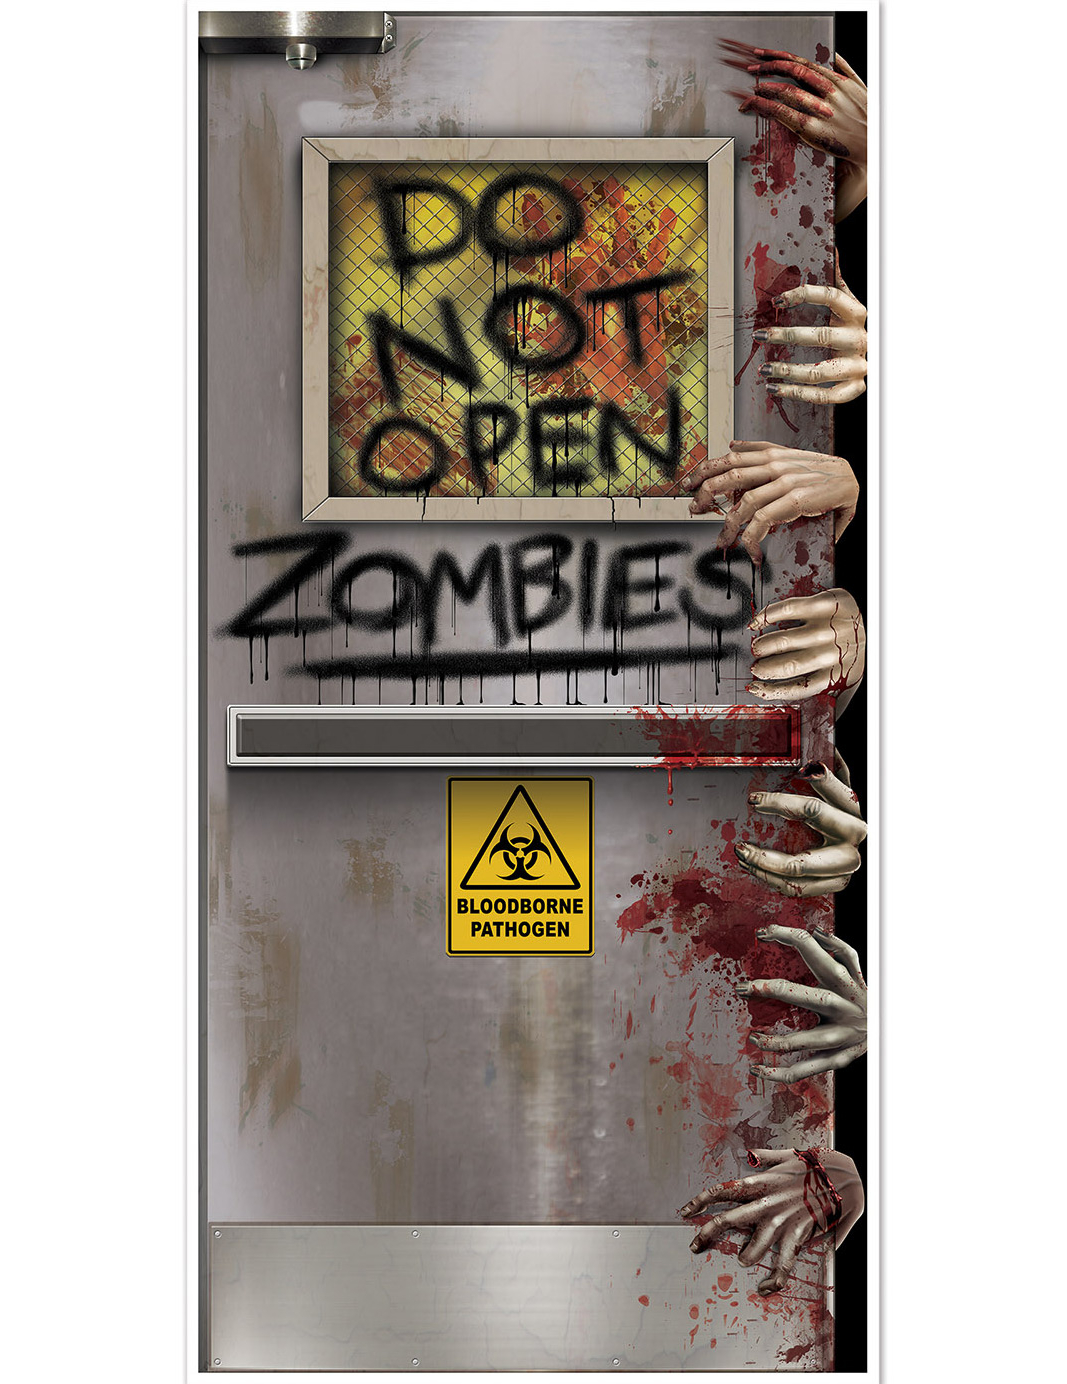 D coration de porte laboratoire zombie halloween - Decoration de porte ...